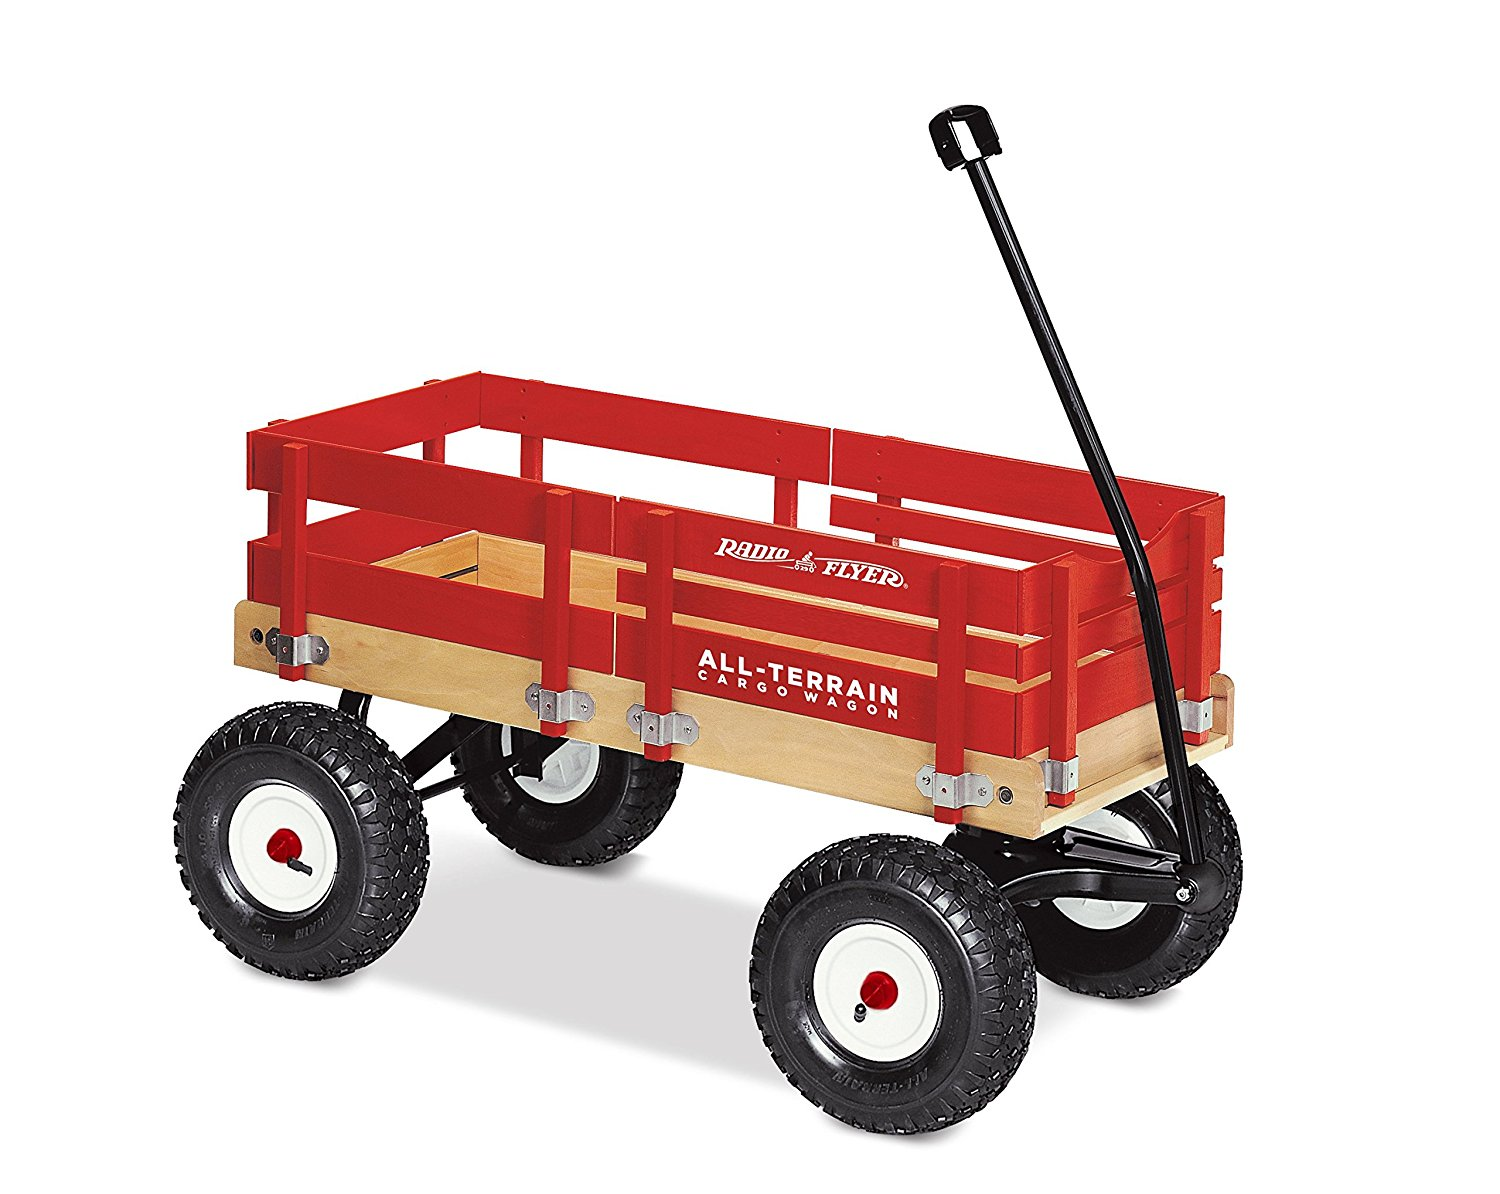 Wagons For Toys : The coolest beach wagons for kids baby